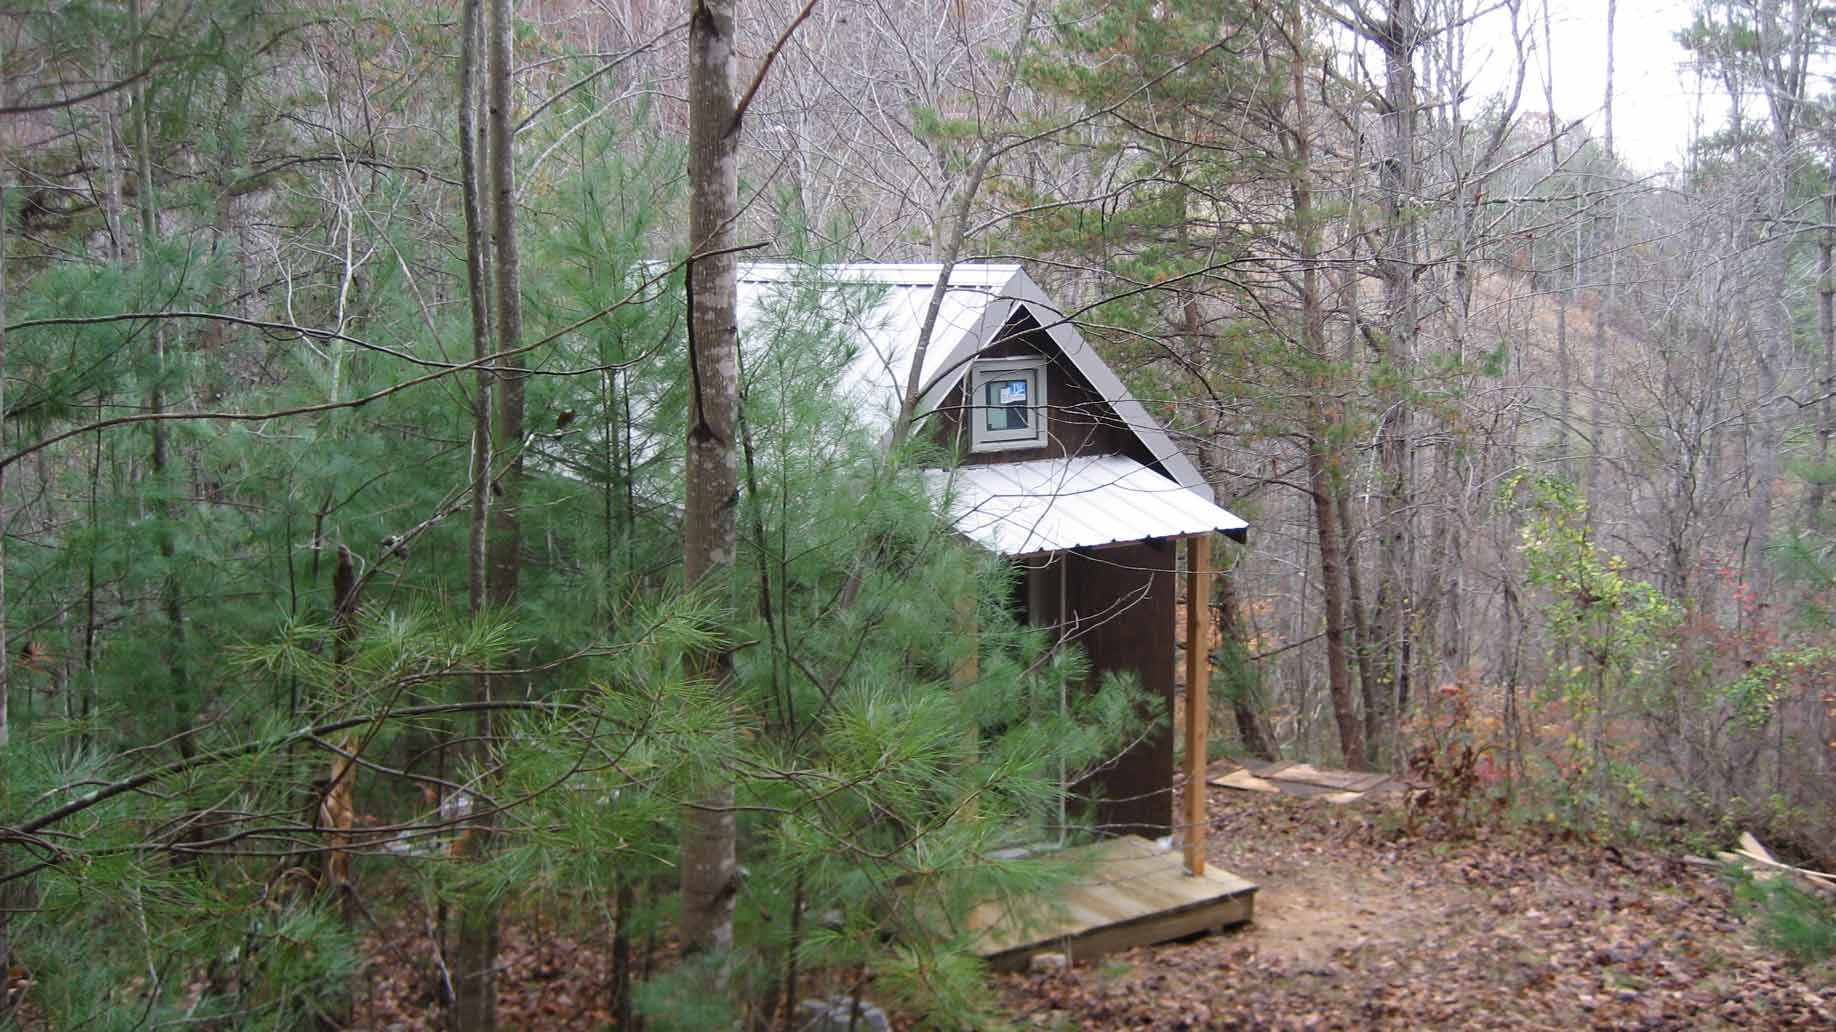 tiny house photo by Laura LaVoie